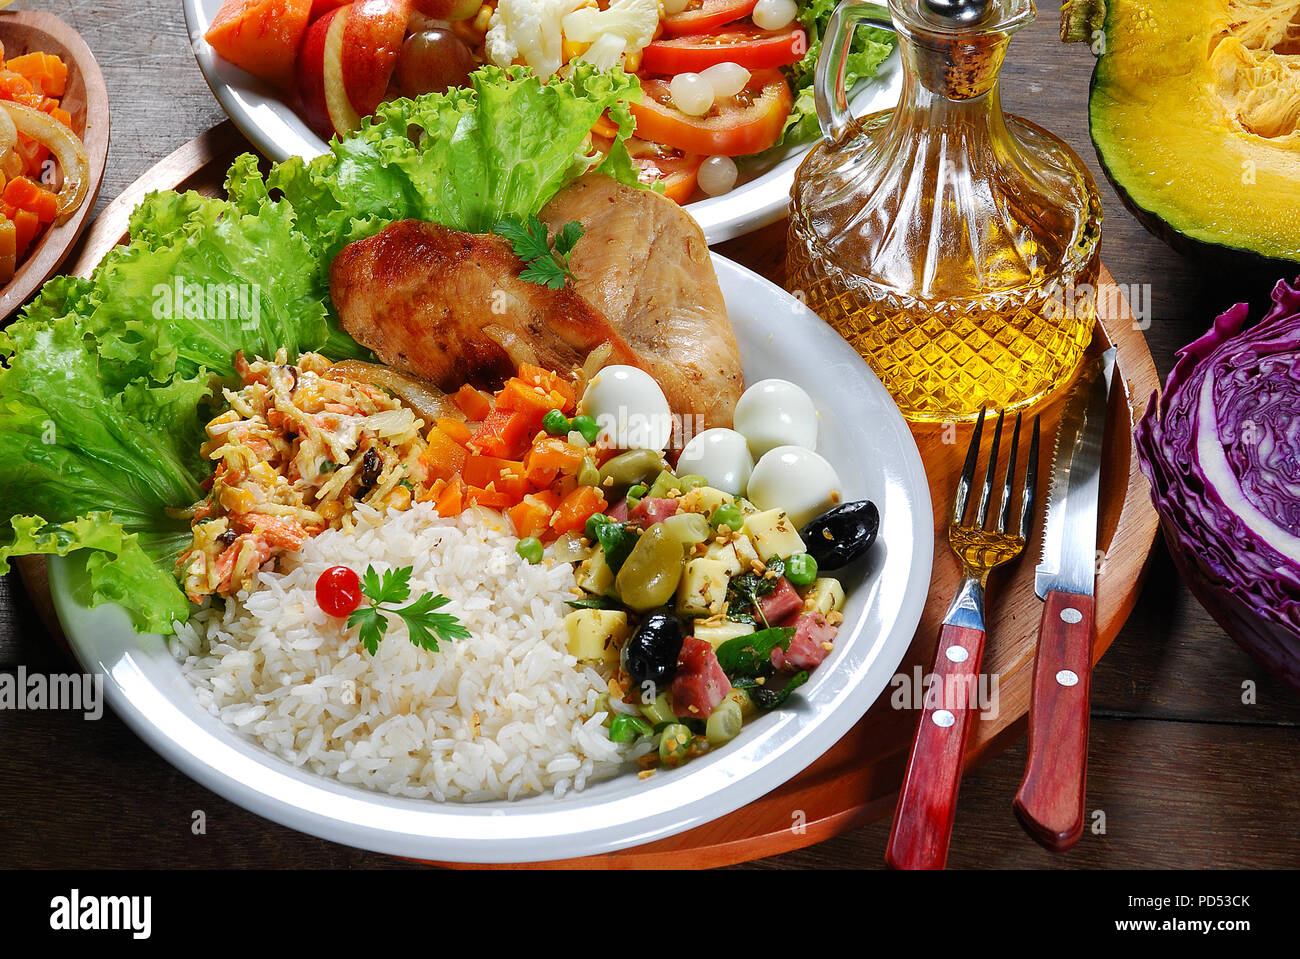 food, dish, steak, dinner, chicken, salad, meal, grilled, rice, vegetable, lunch, meat, healthy, plate, tomato, cuisine, delicious, barbecue, backgrou - Stock Image